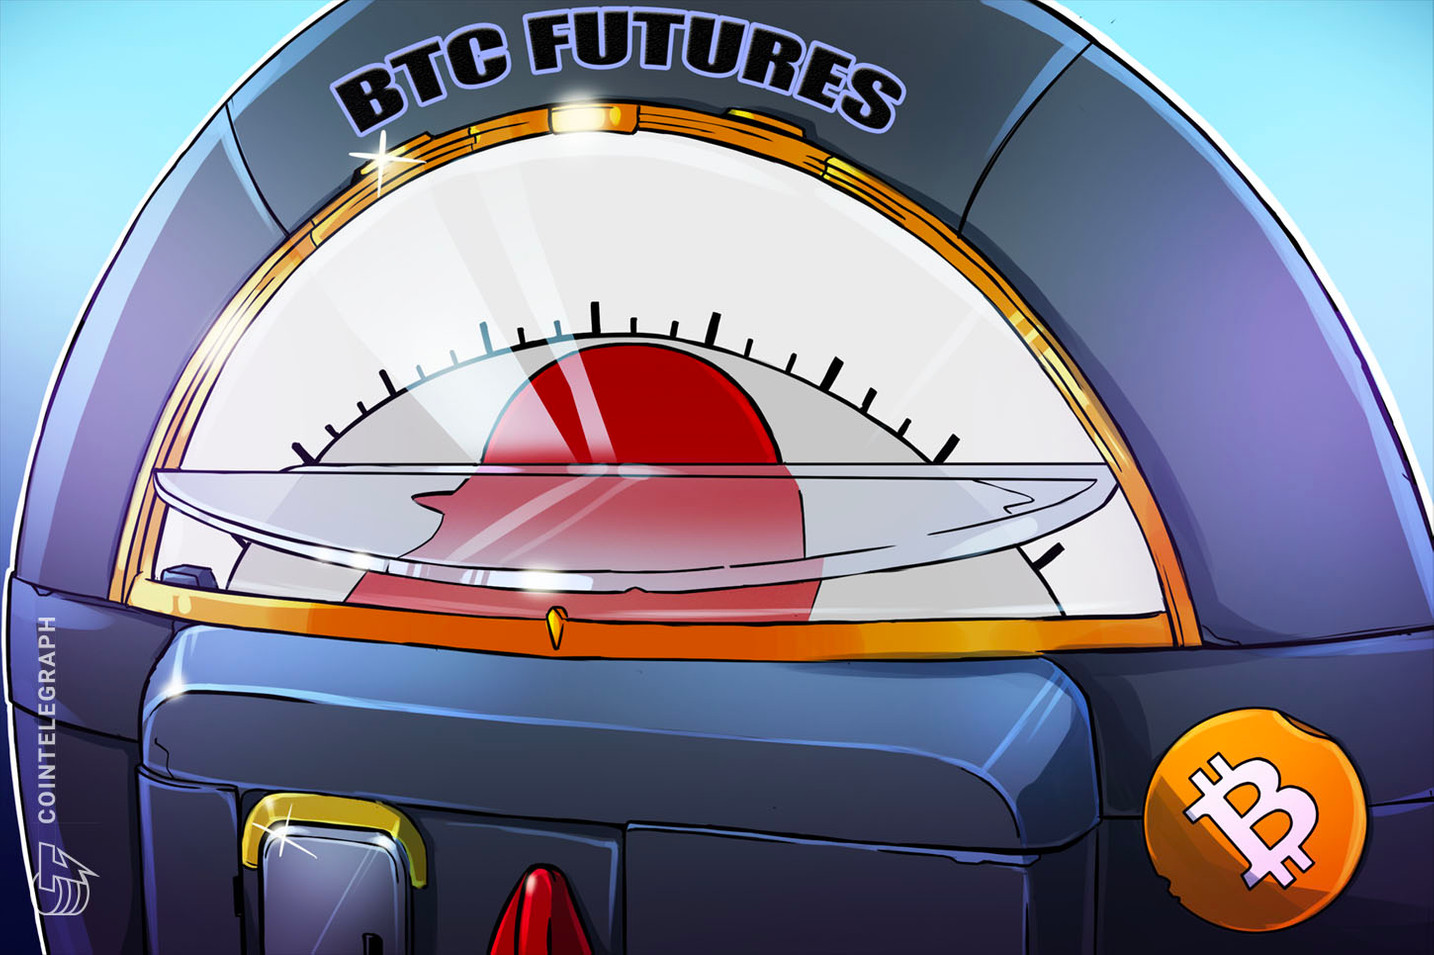 Record $7.9B Bitcoin futures open interest shows bears are watching BTC price